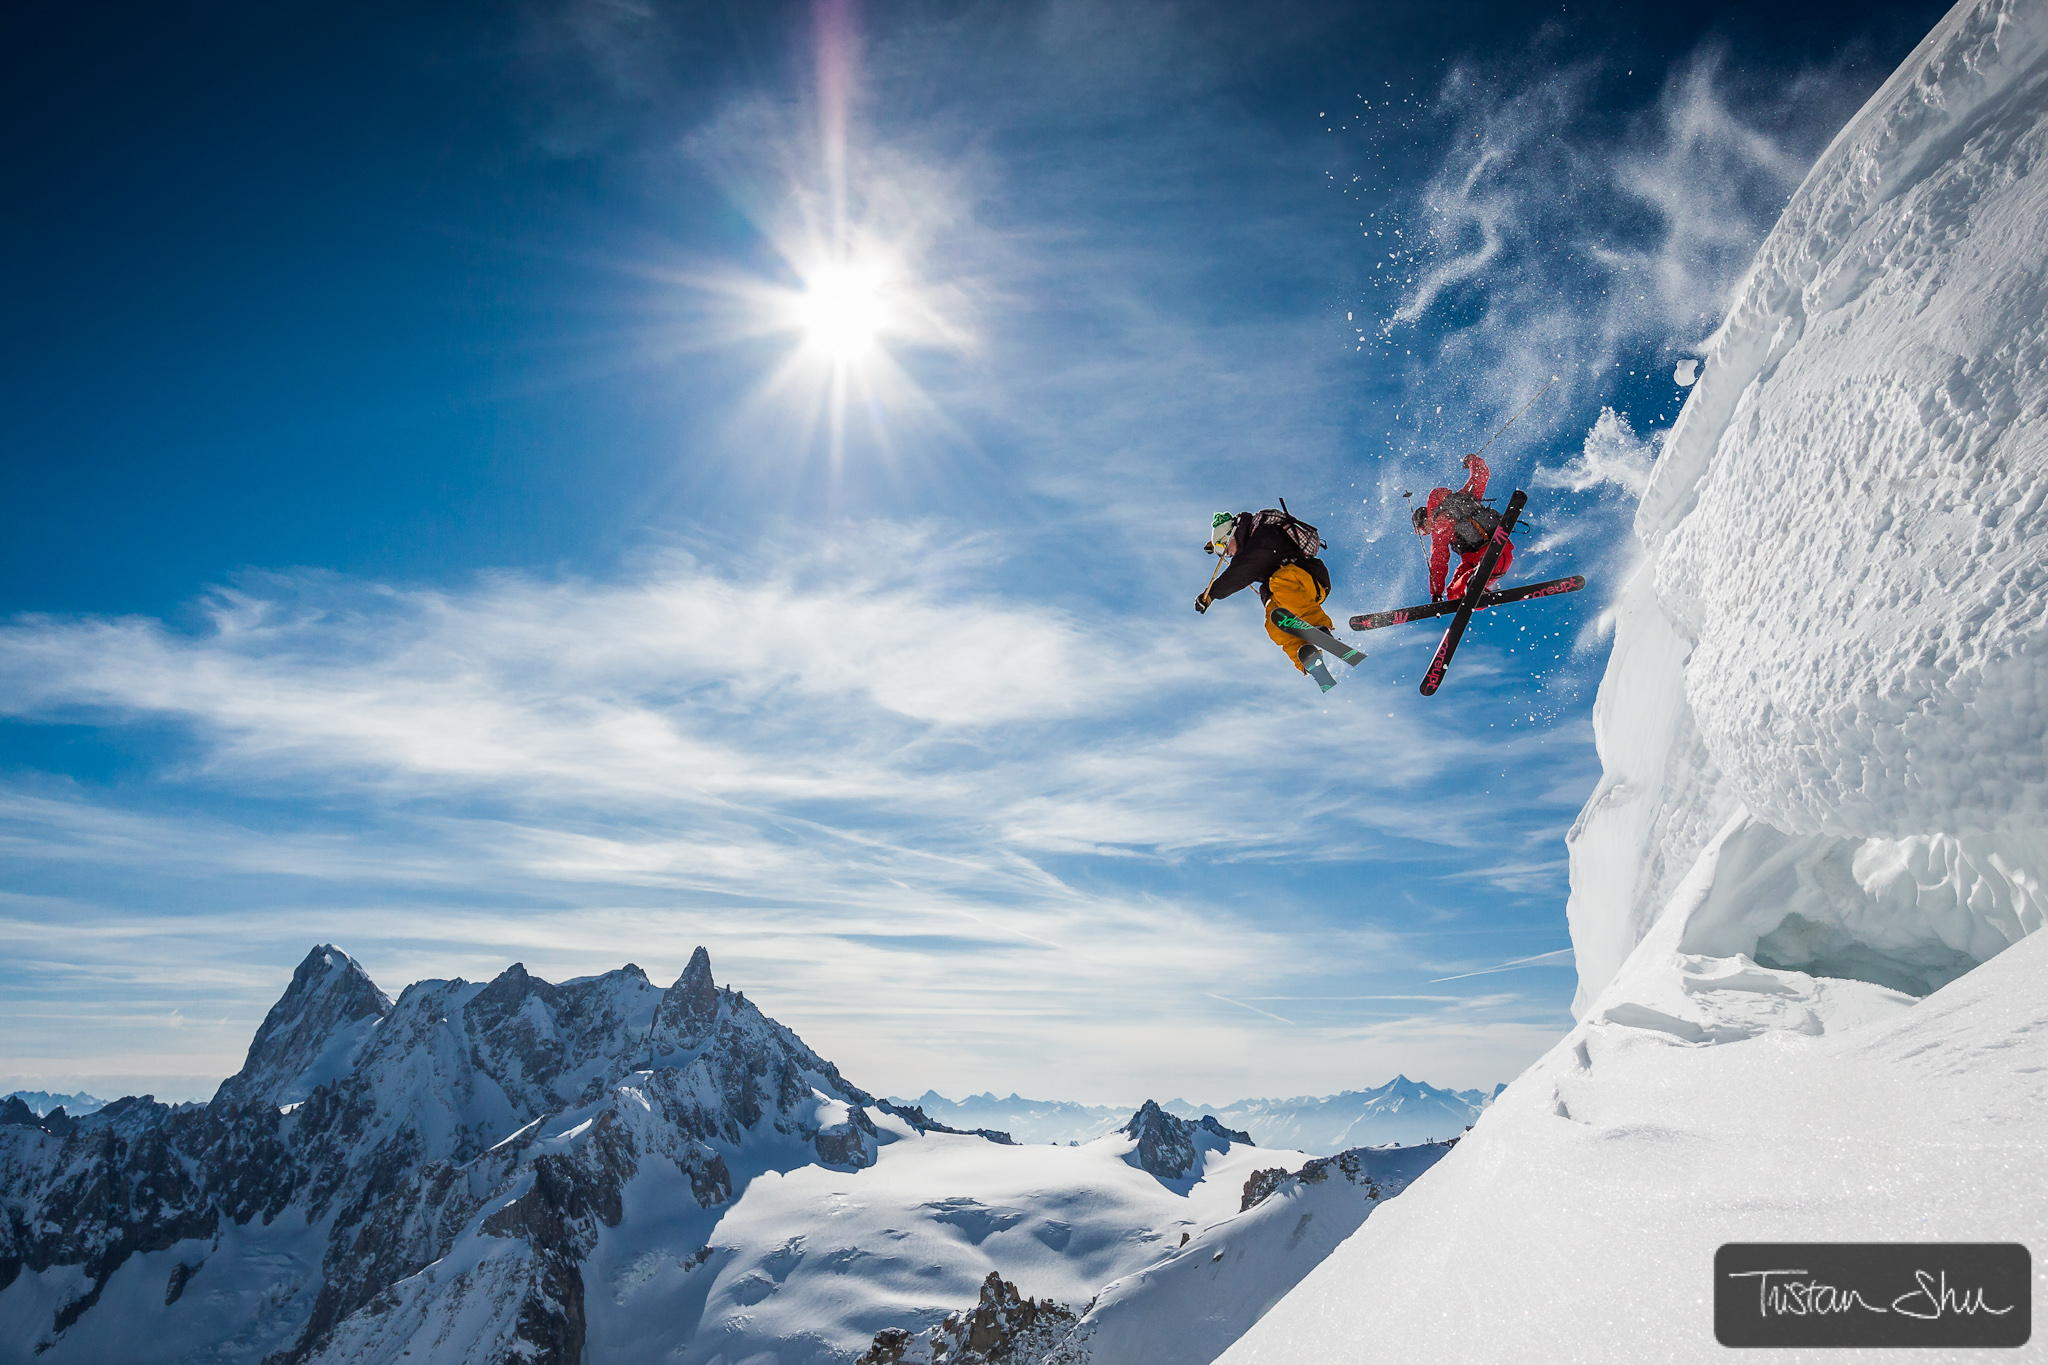 A Day in the Life of Extreme Action/Sports Photographer Tristan Shu